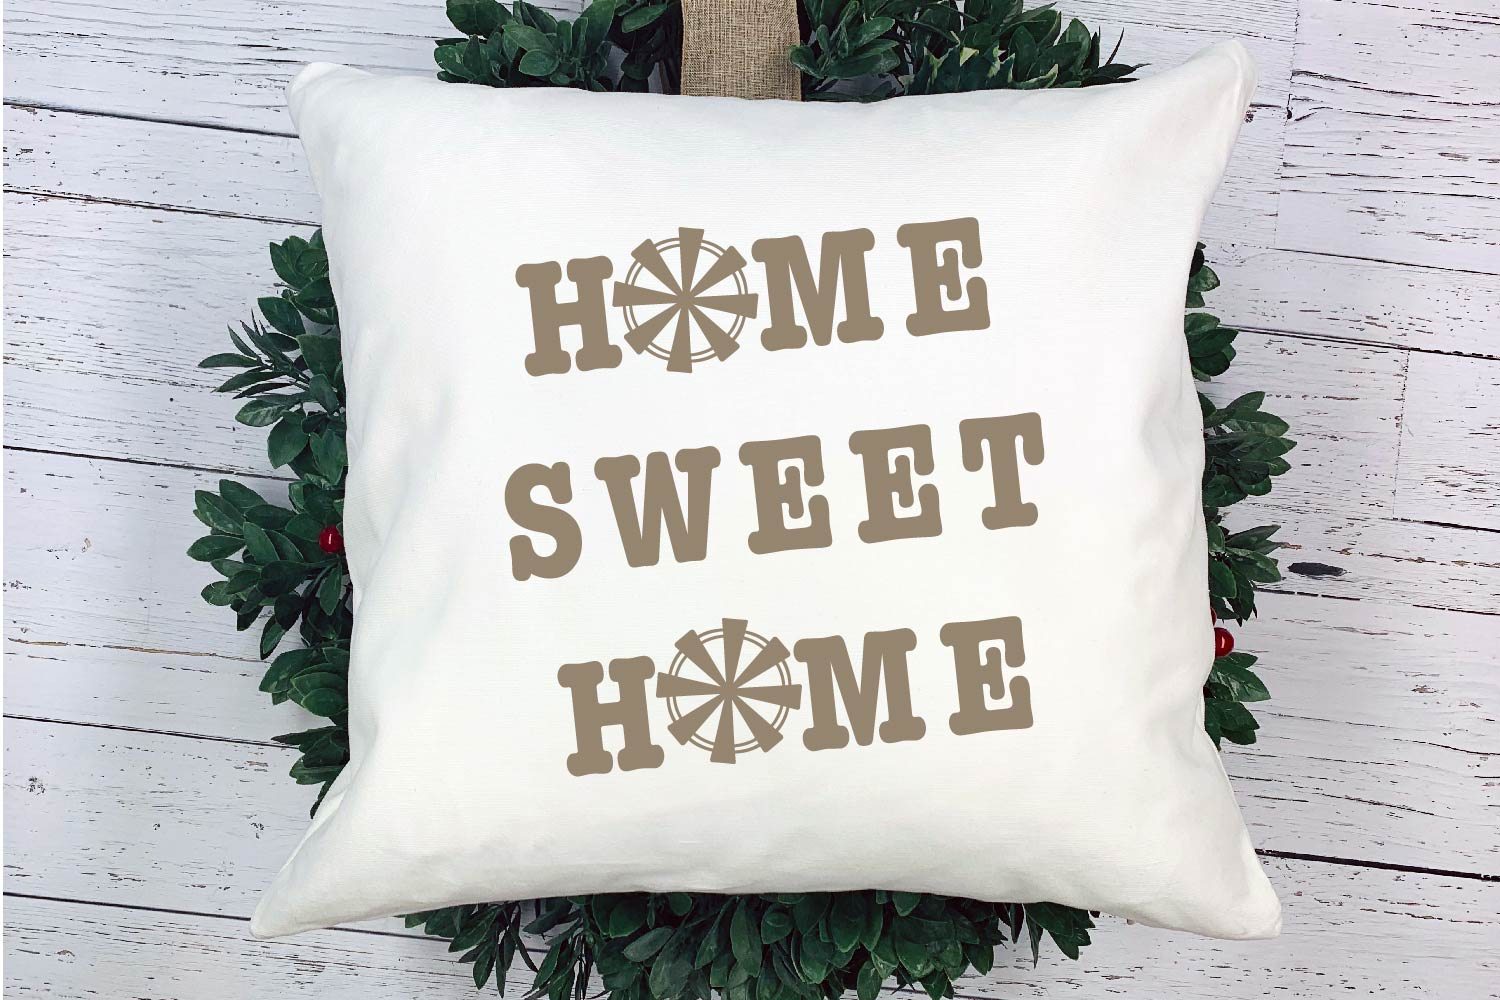 Sign Doodles - A Dingbat Font - Great For Farmhouse Signs! example image 4